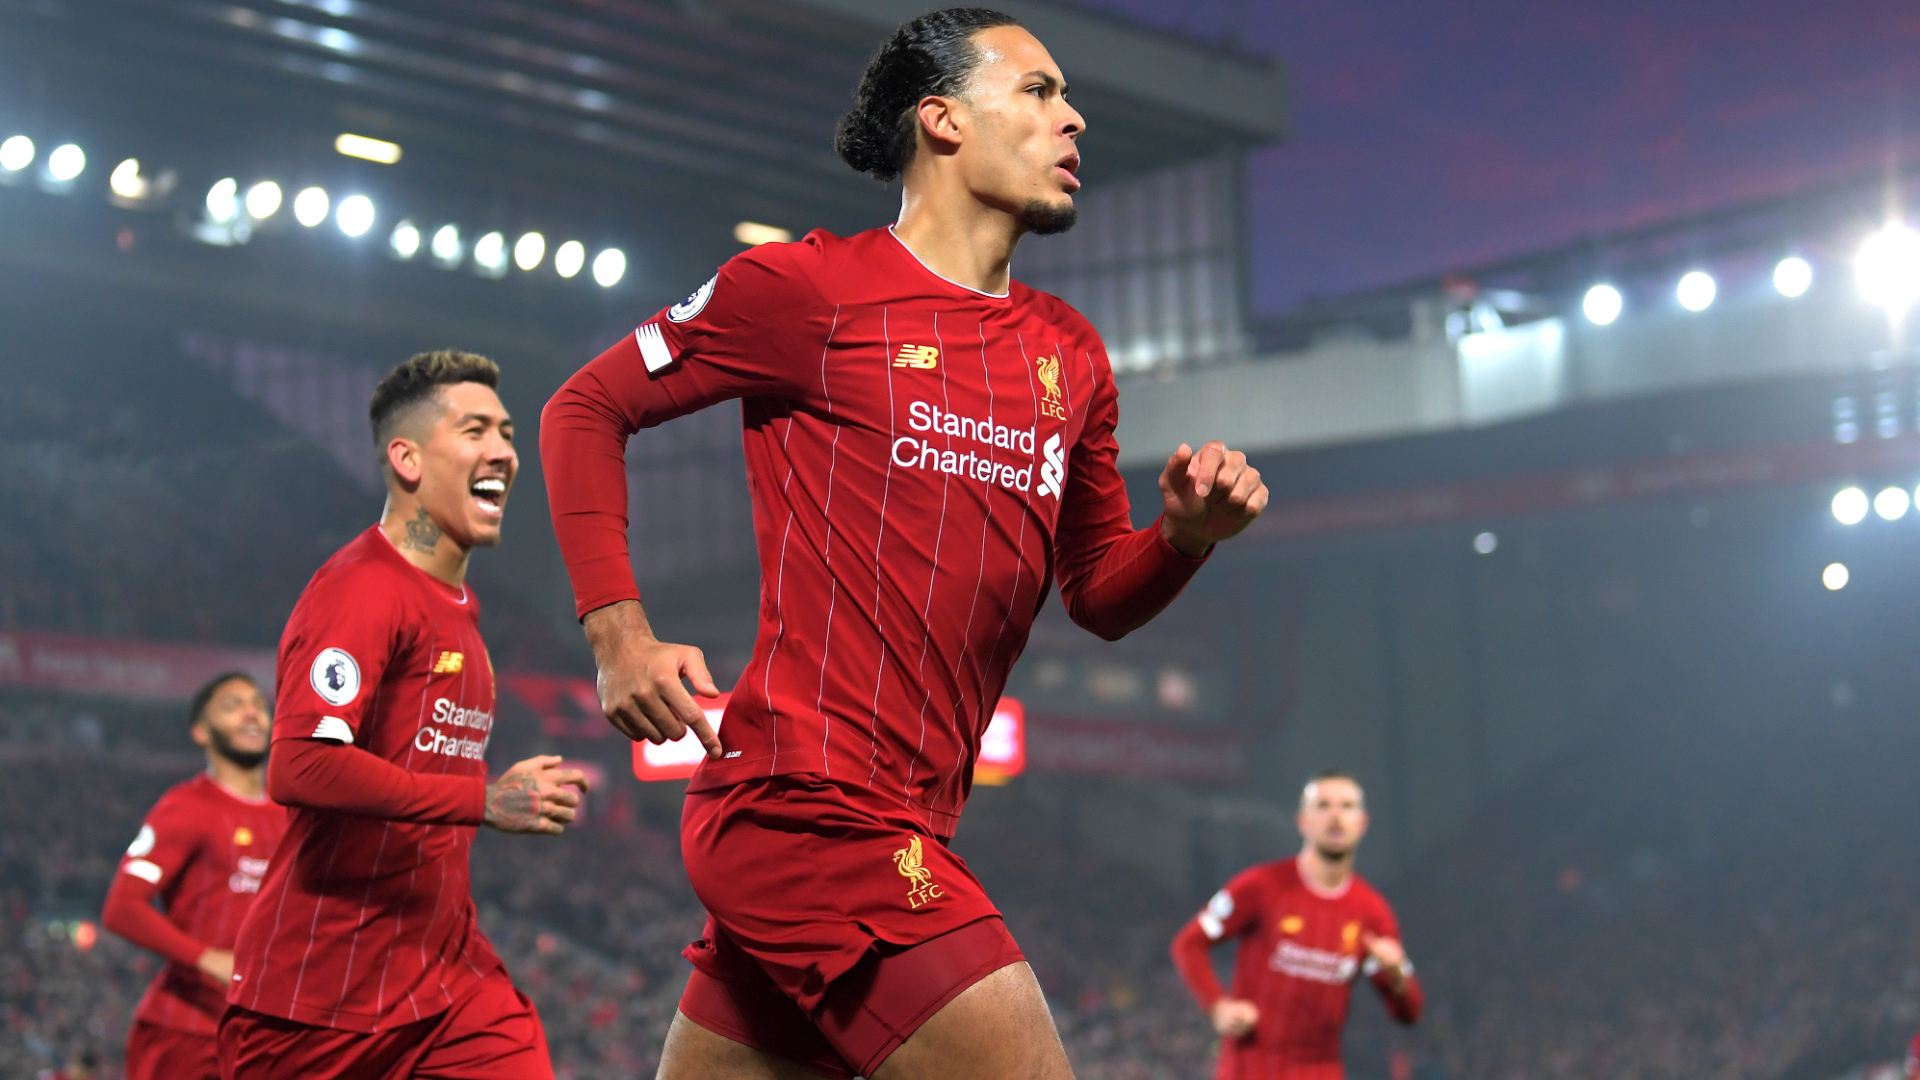 'Firmino will get his goal at Anfield' – Liverpool striker backed by Robertson after VAR frustration